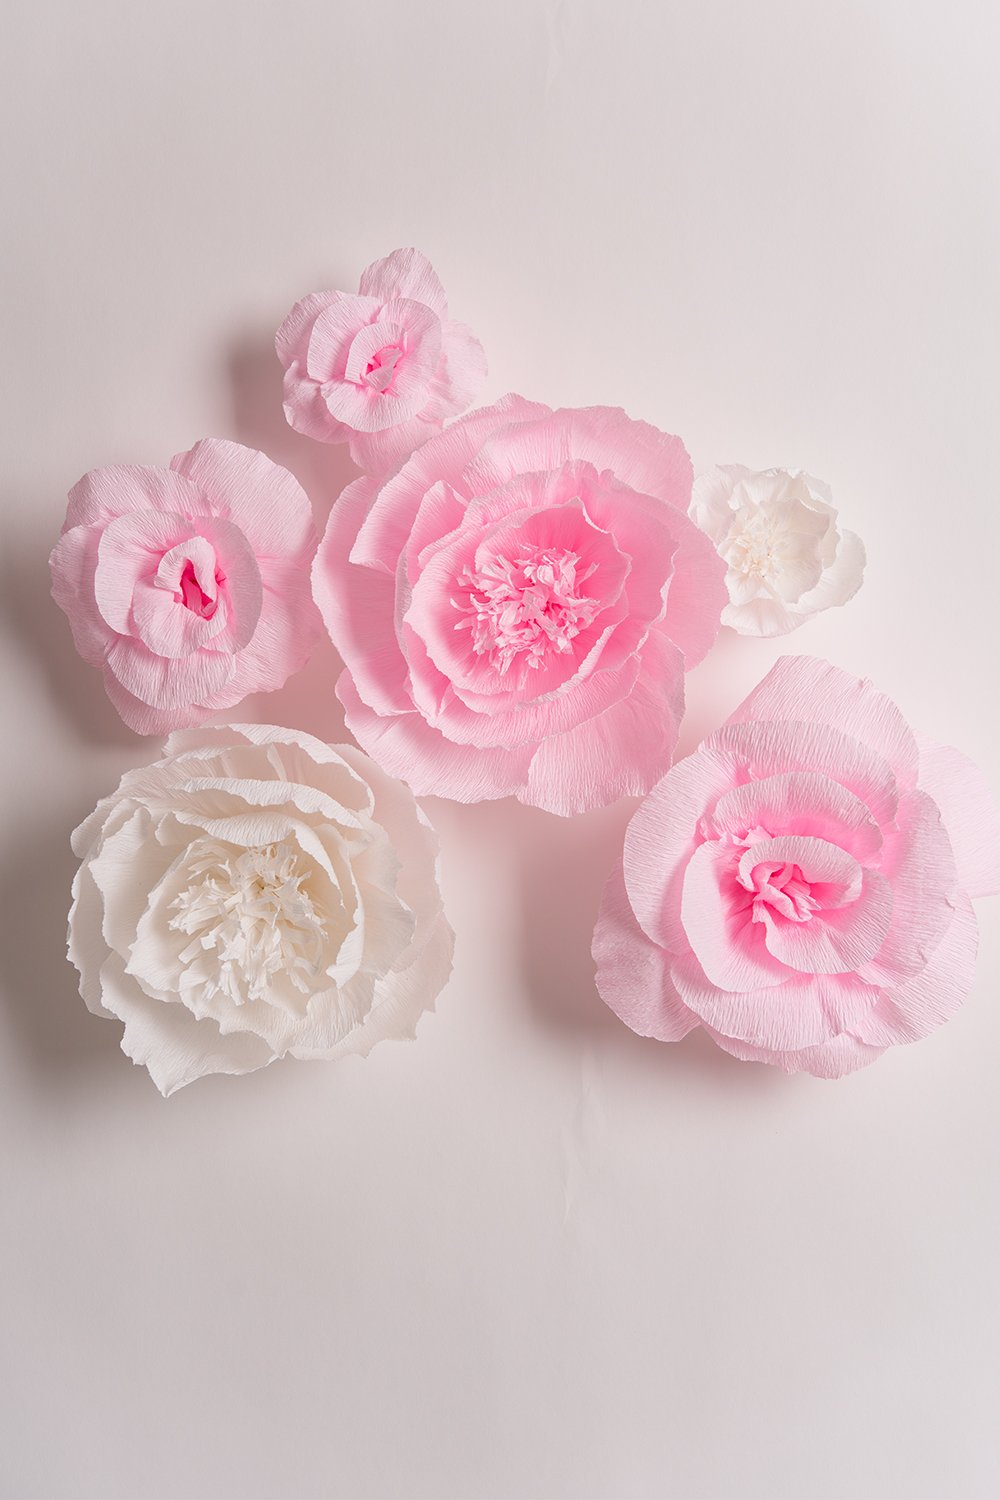 Handcrafted-FlowersLarge-Crepe-Paper-FlowersPink-and-White-flower-Set-Of-6For-Wedding-Backdrop-Baby-Nursery-Home-Decor-Birthday-Party-Photo-BackdropNursery-WallArchway-DecorEvent-Decorations